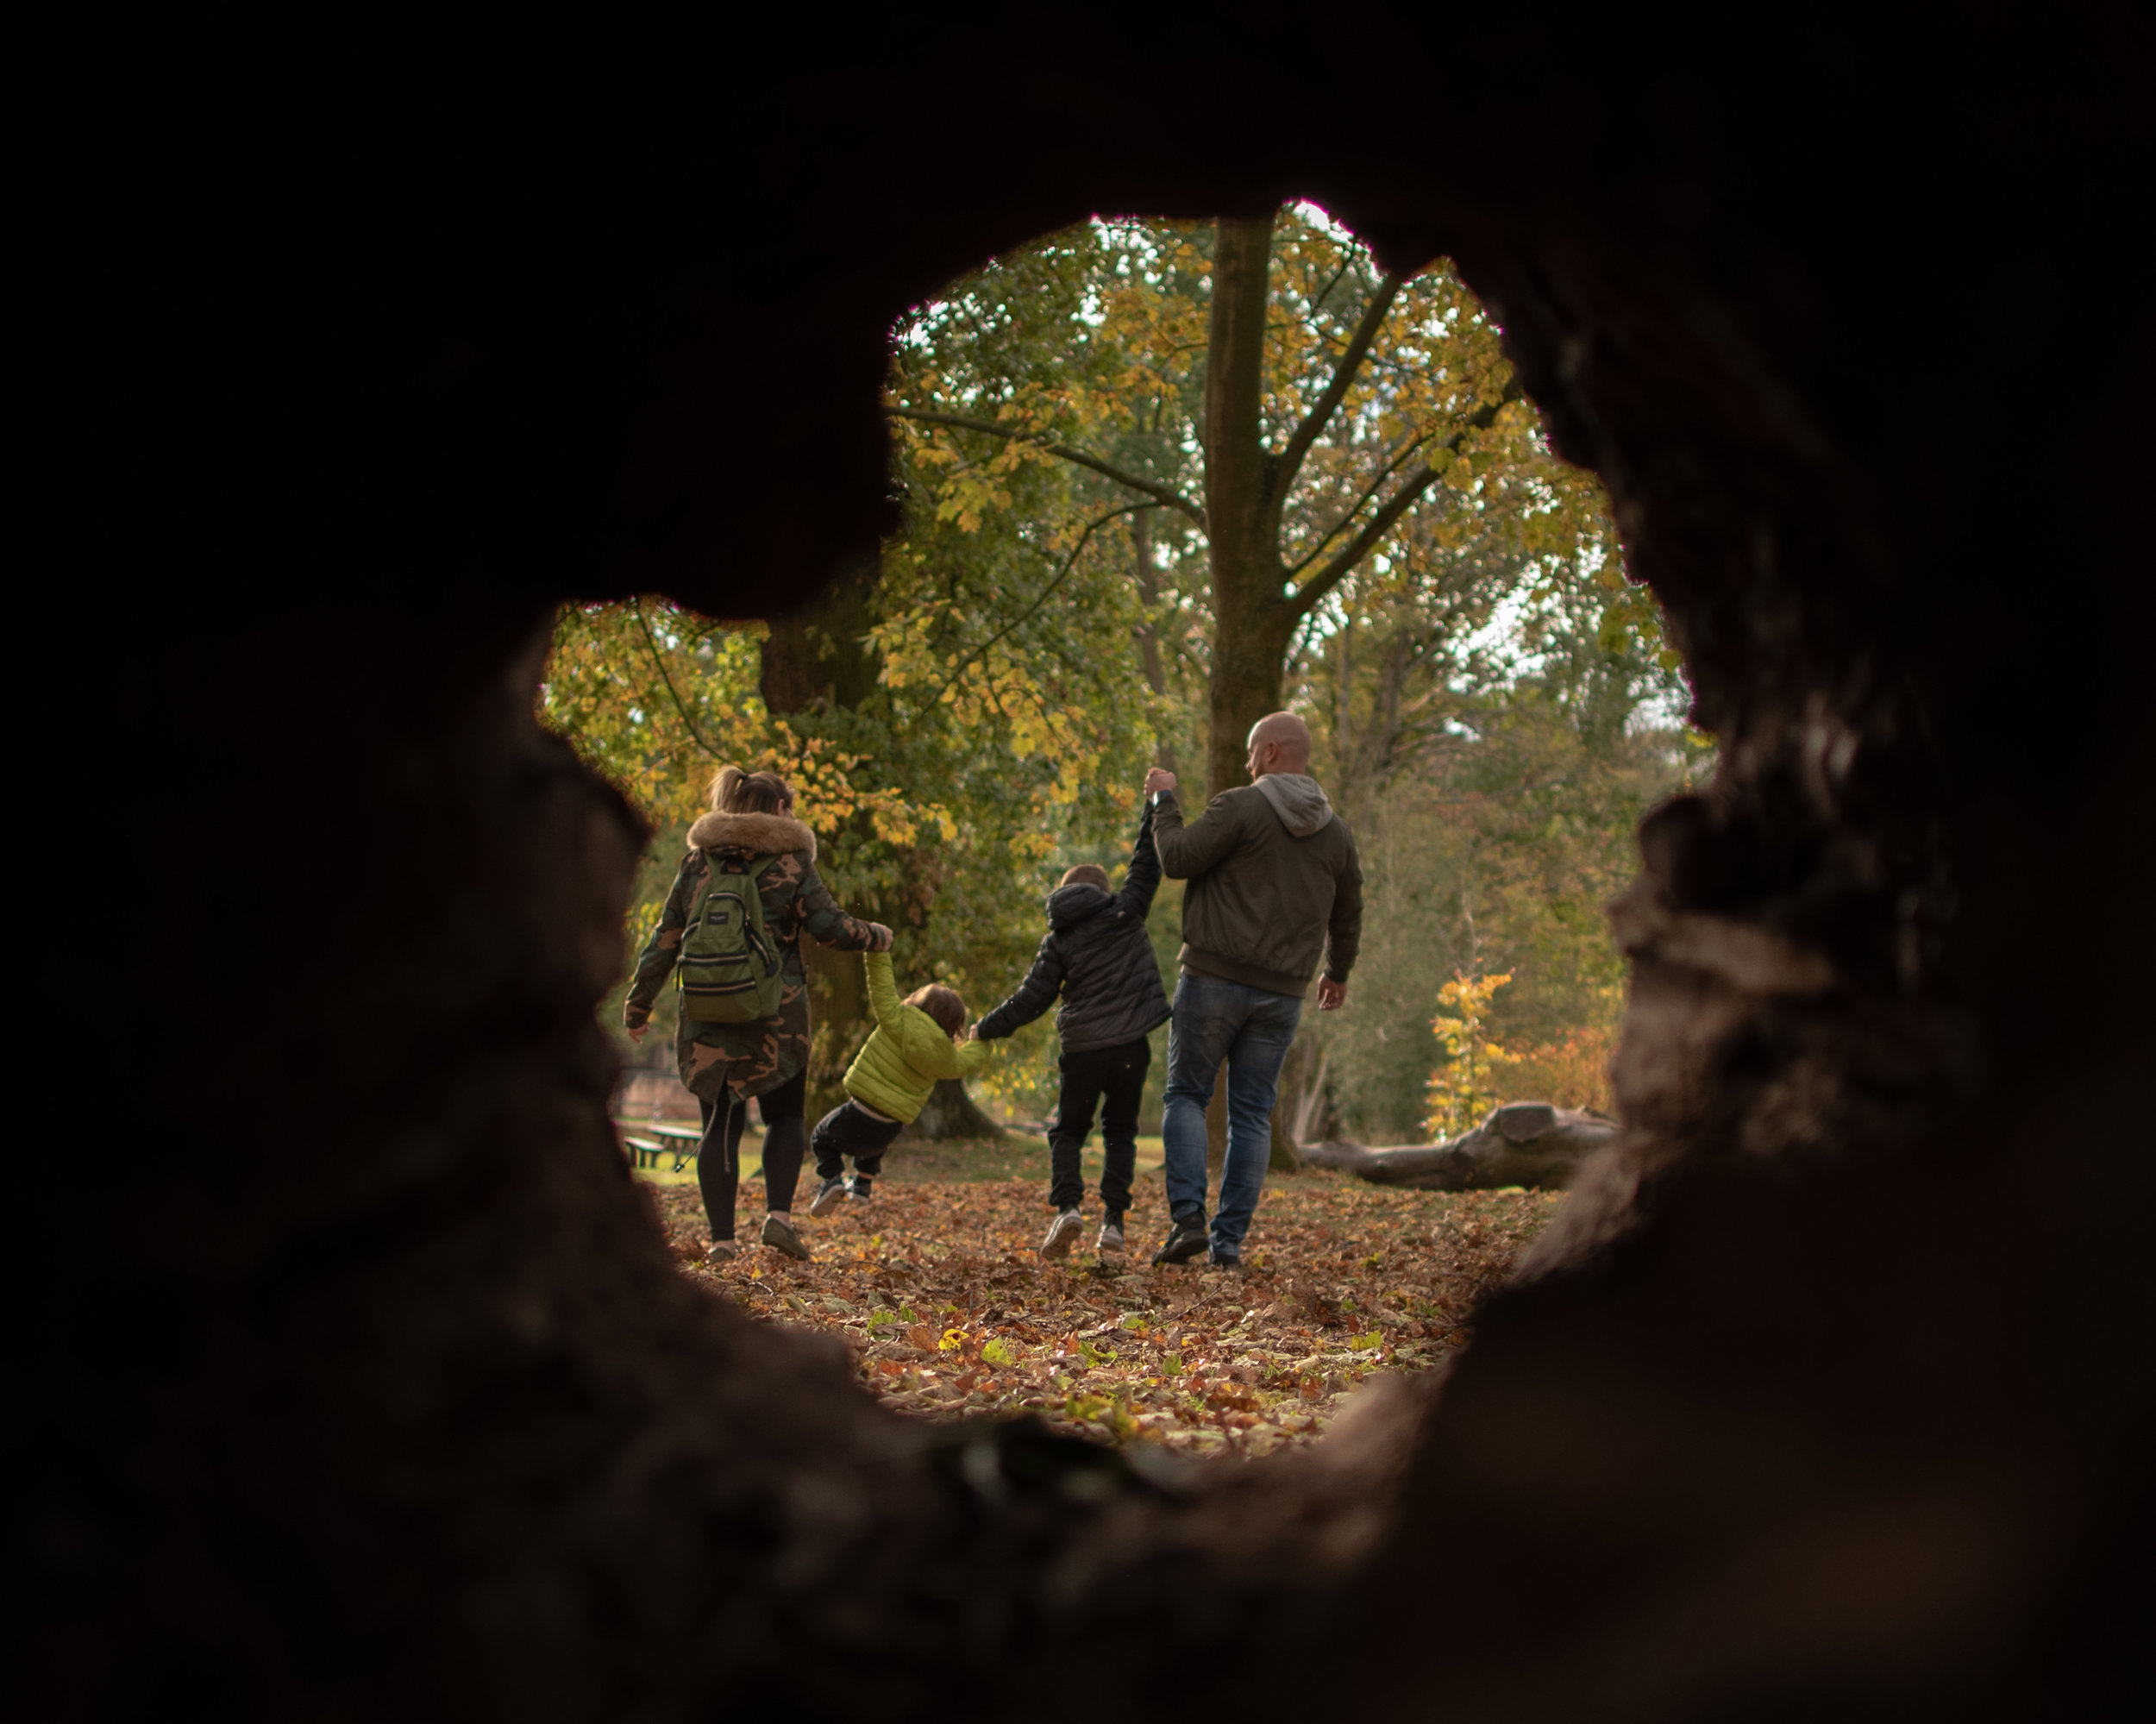 Elvaston Castle, is a great place for exploring Derbyshire's autumnal countryside and a great place for a family of pre-wedding photoshoot!